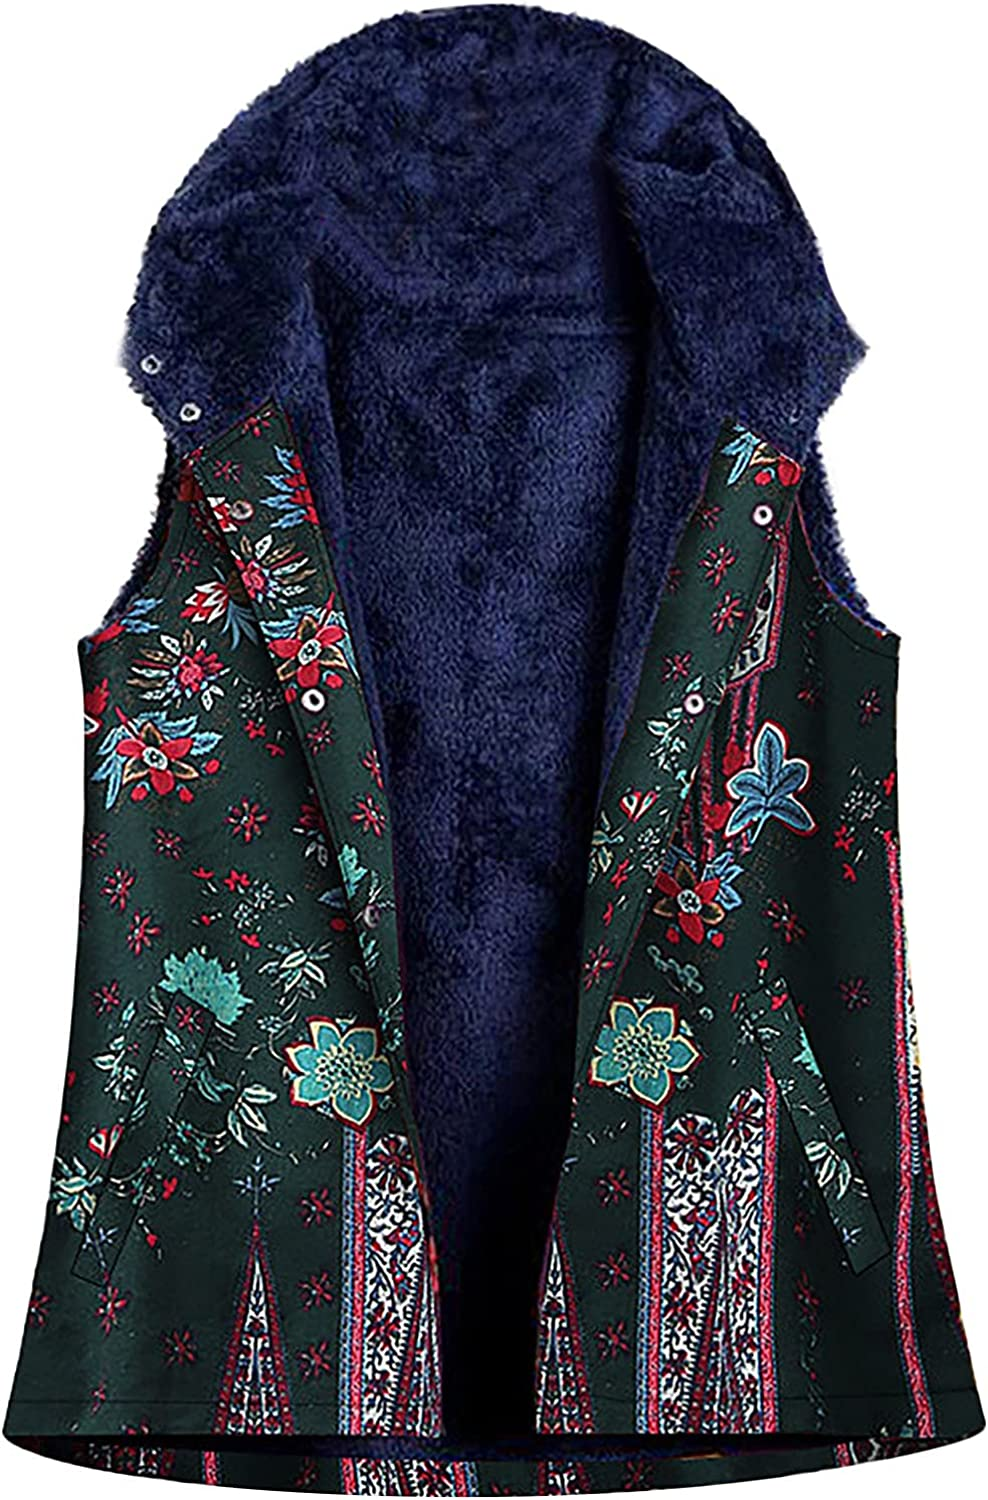 Womens Tops Large special price Fall Clothes Ladies Cotton and Linen Plus Velv New products, world's highest quality popular! Print